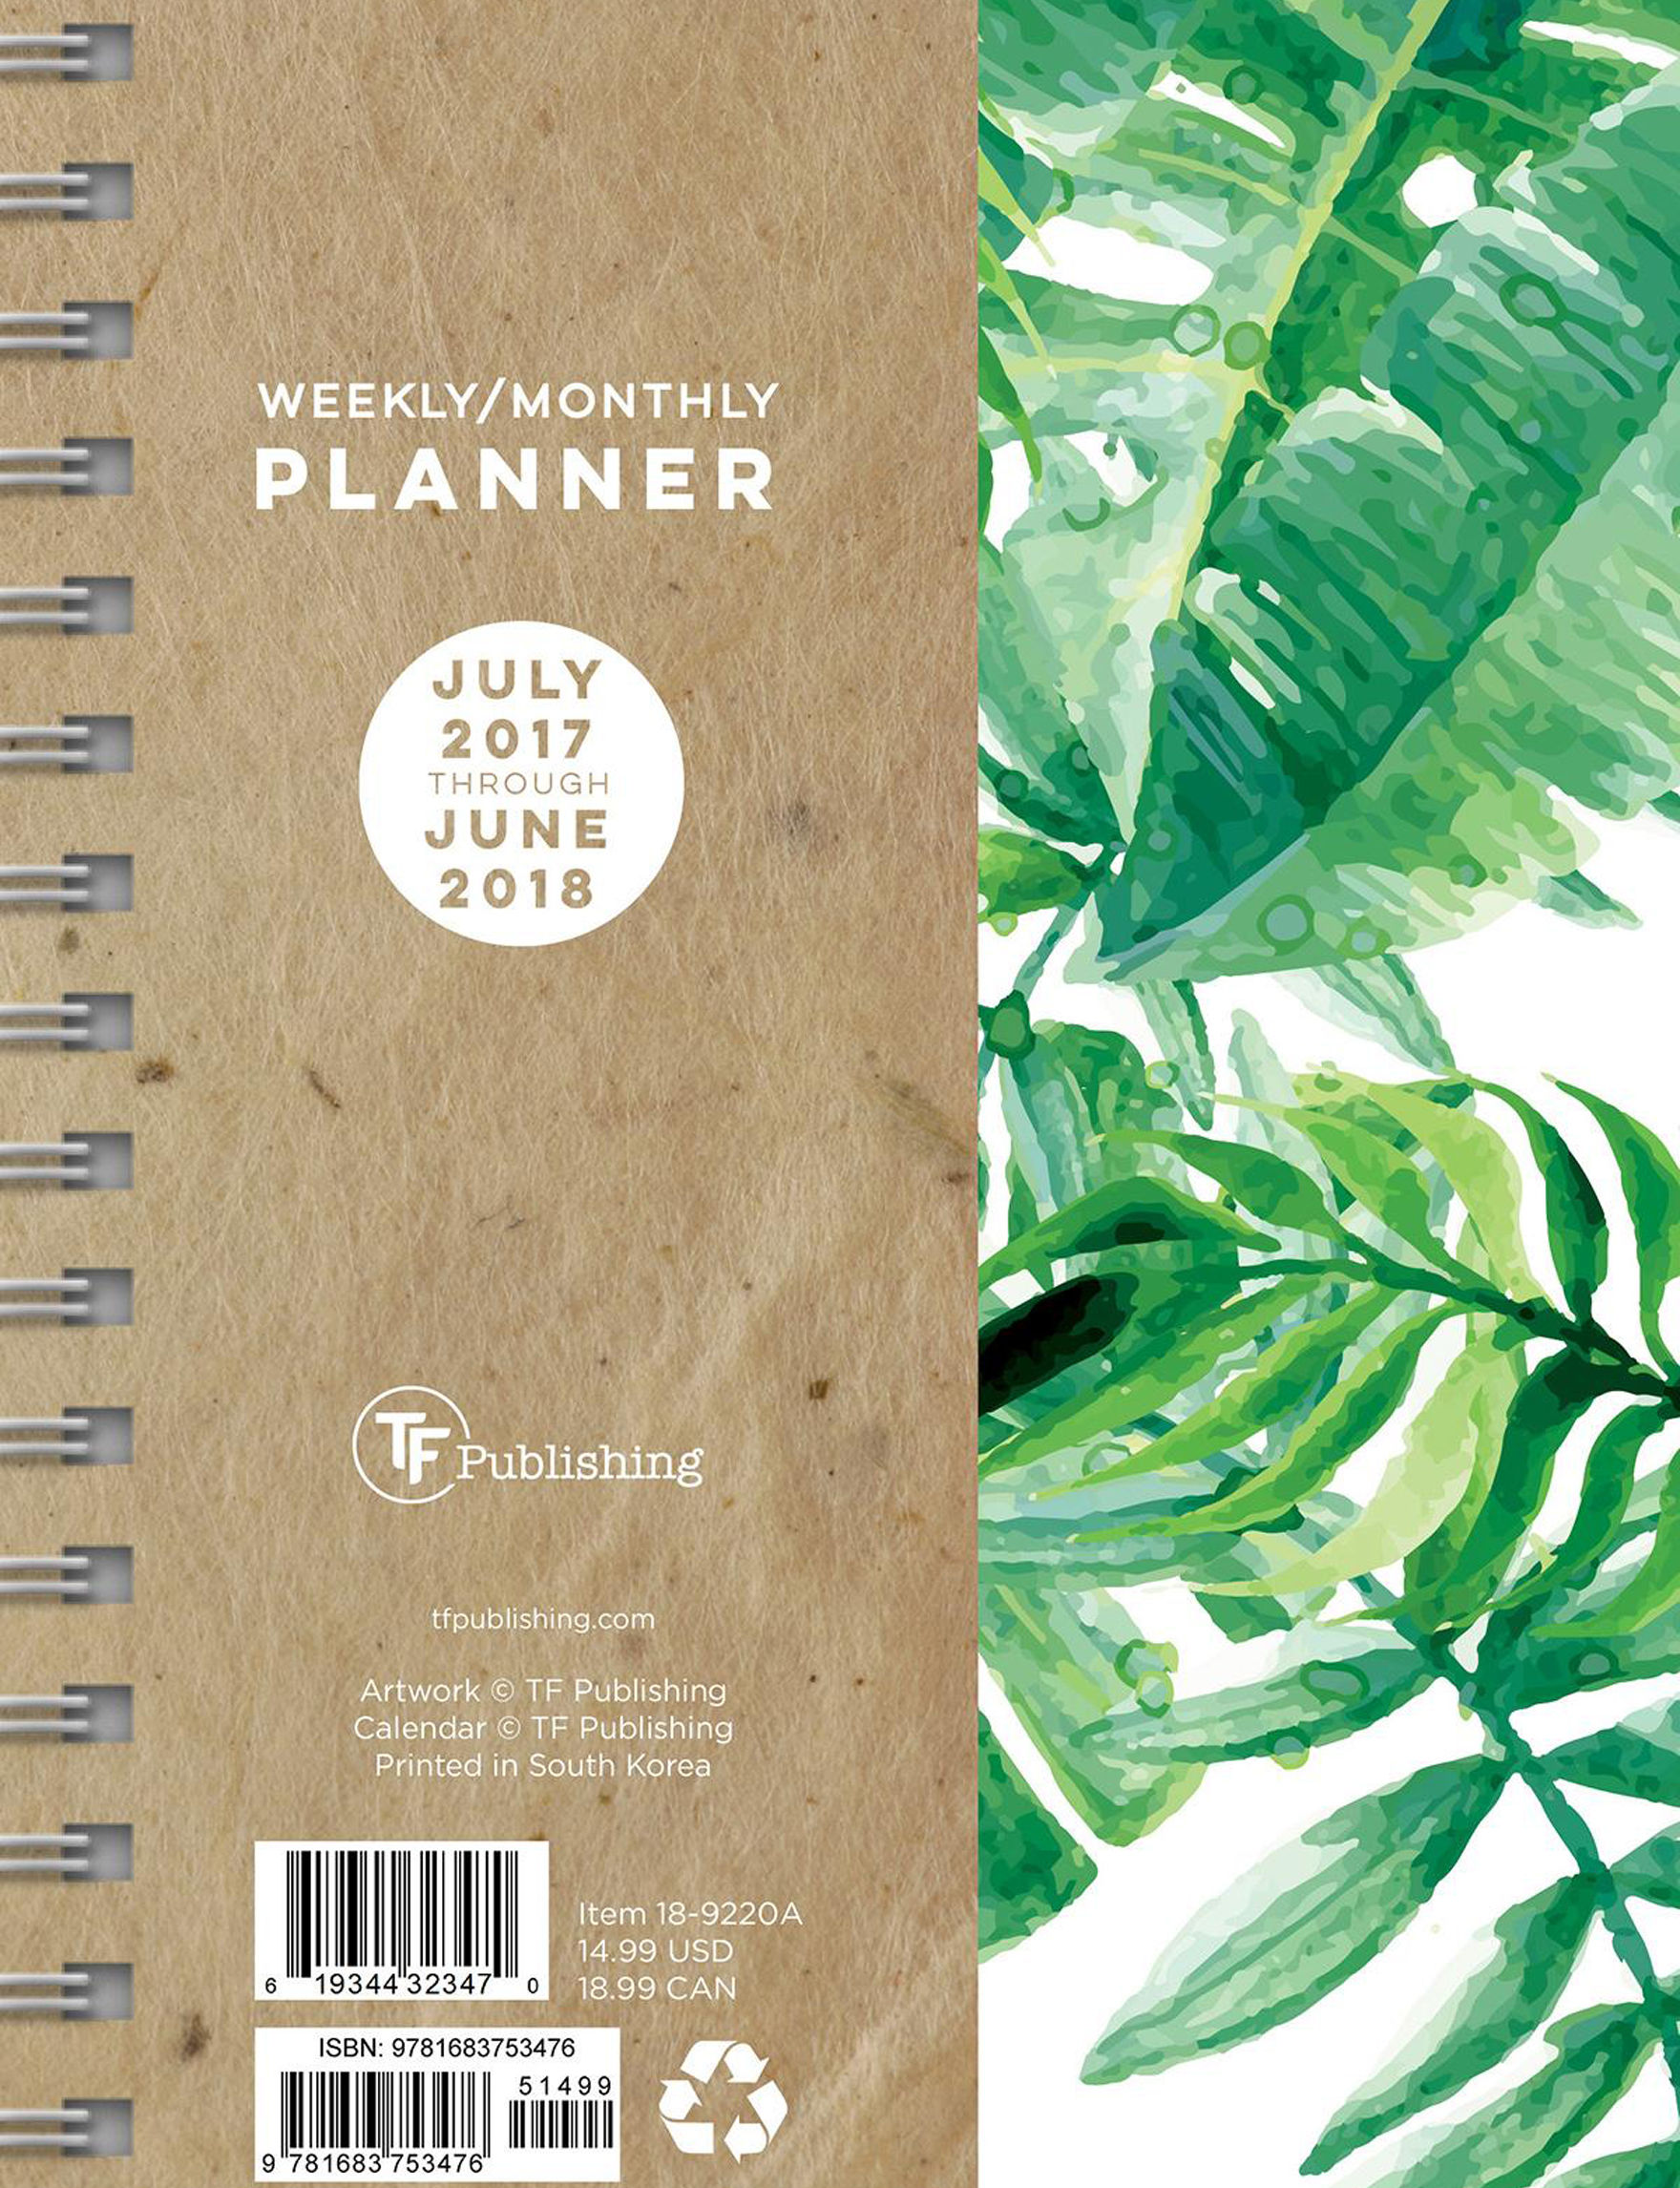 TFI Publishing Green Calendars & Planners School & Office Supplies